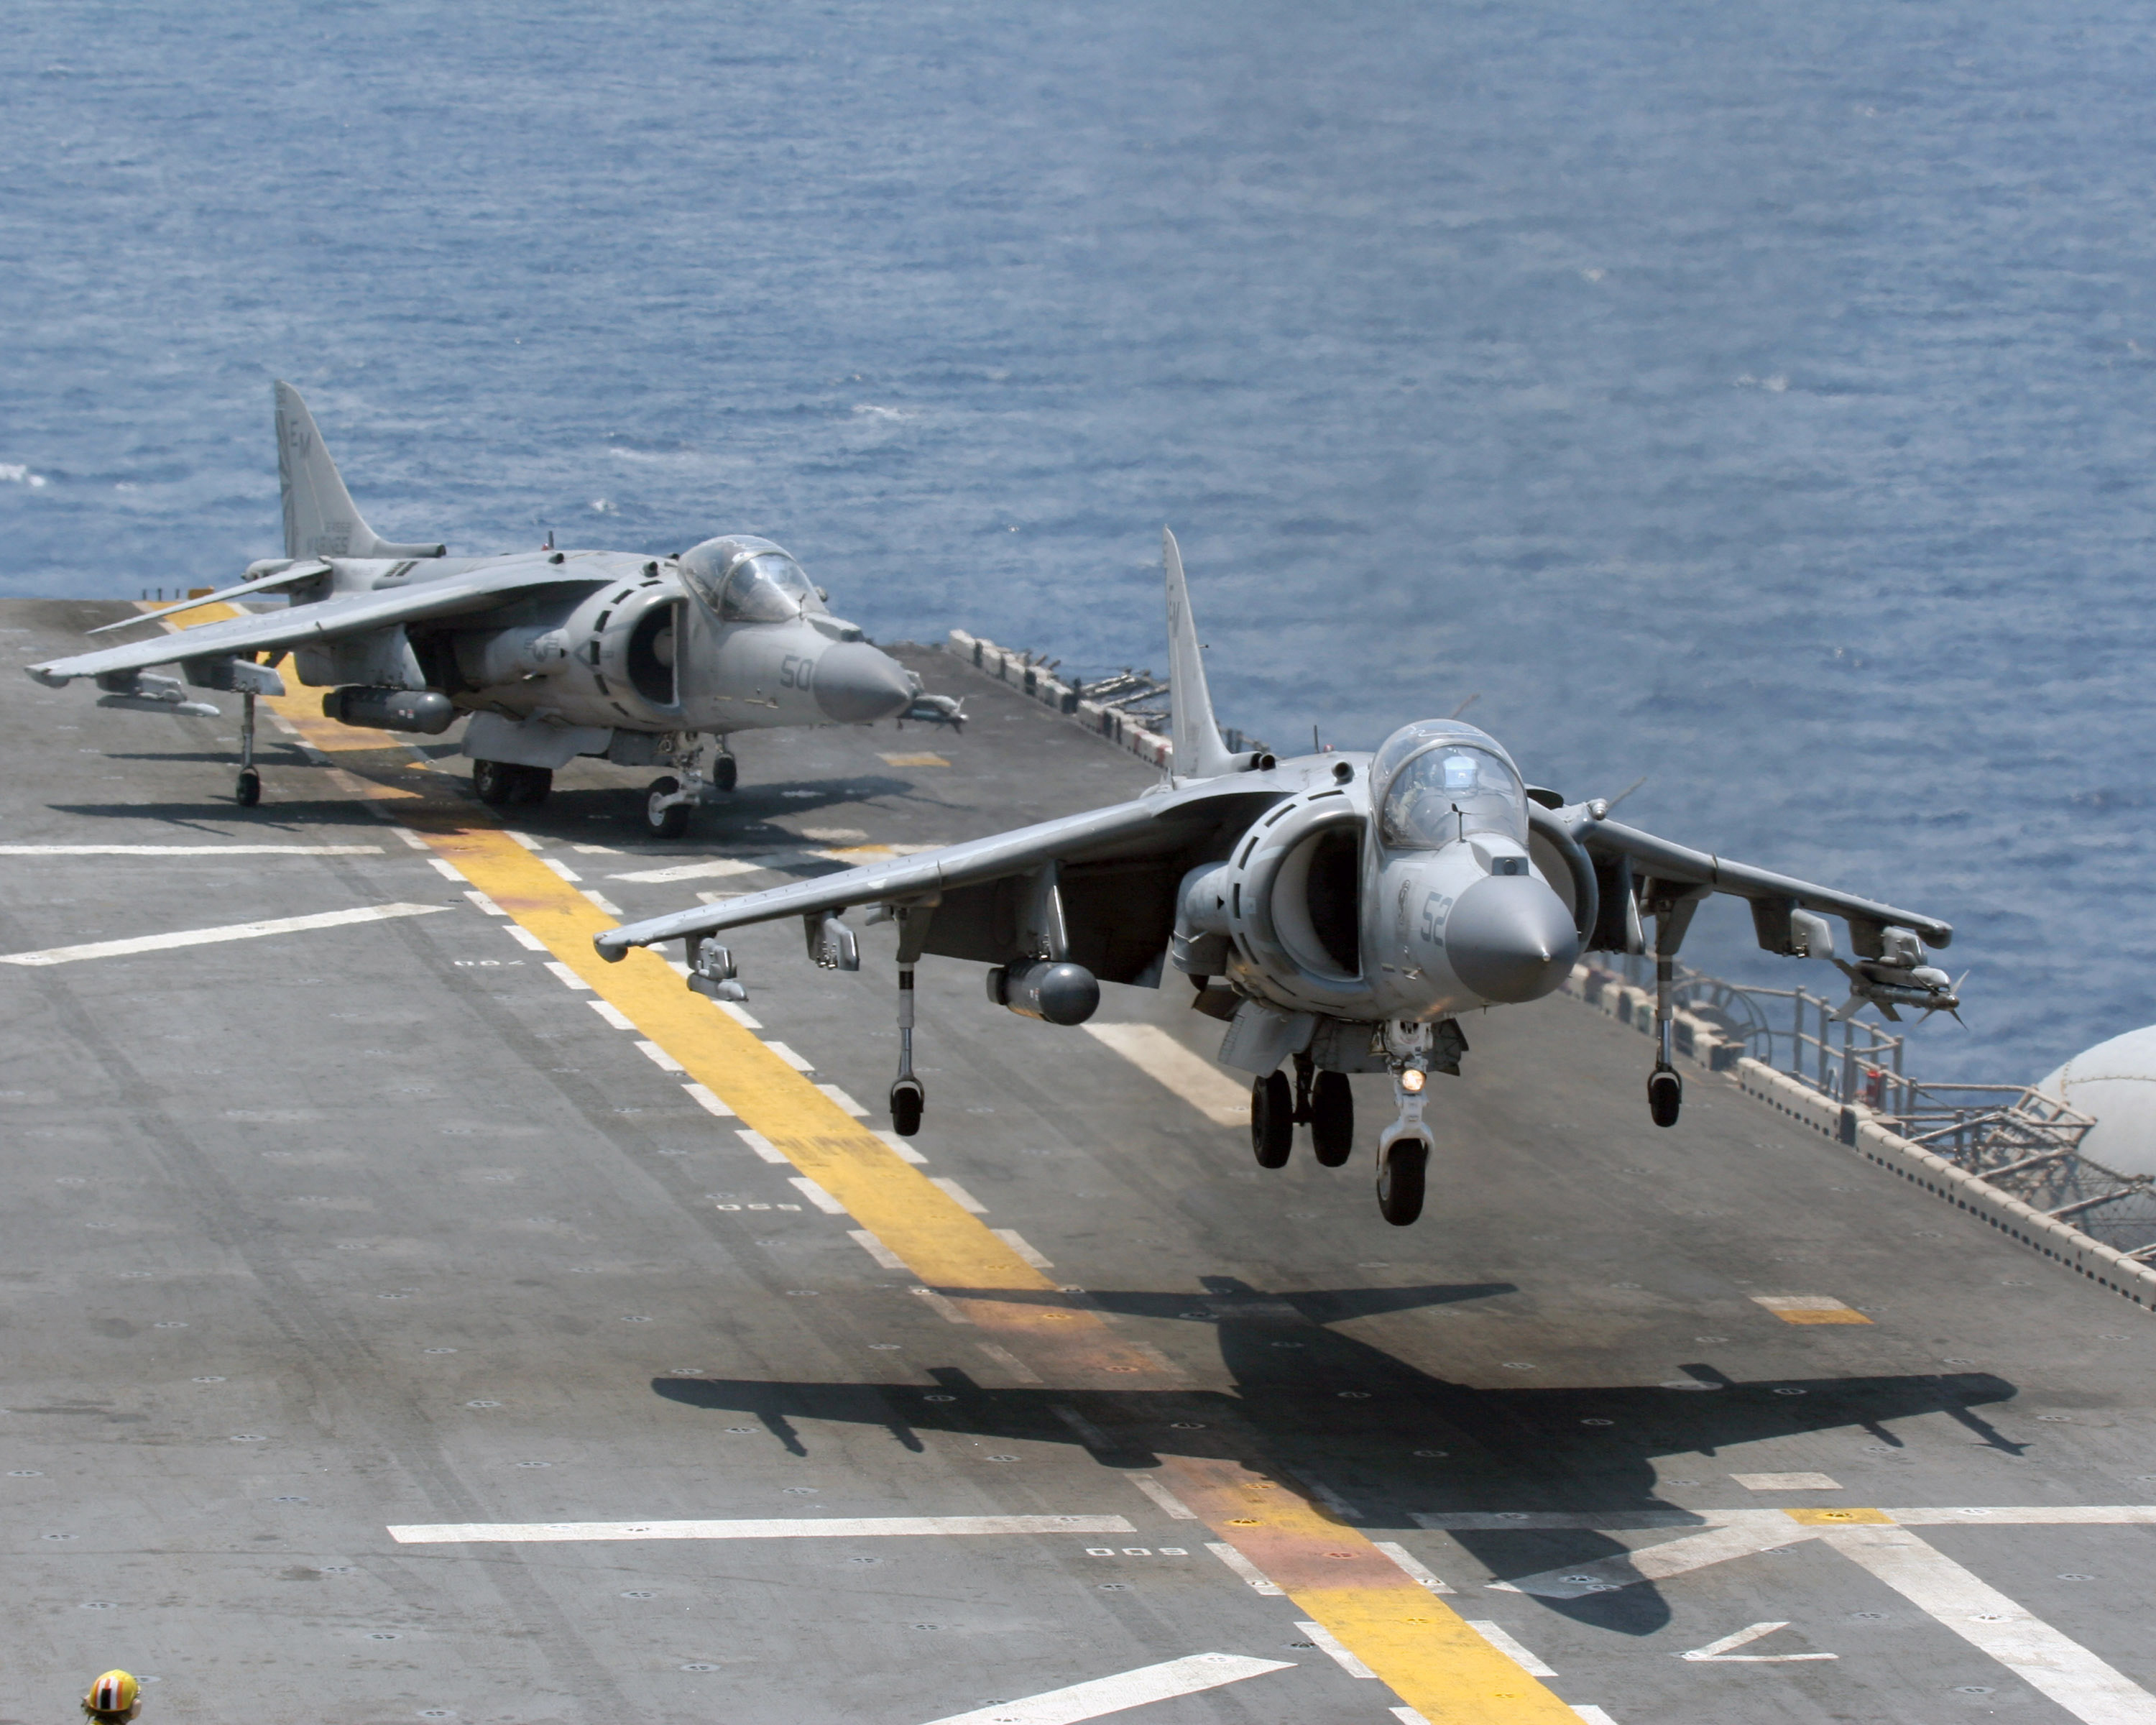 harrier planes Aircraft carriers HD Wallpaper